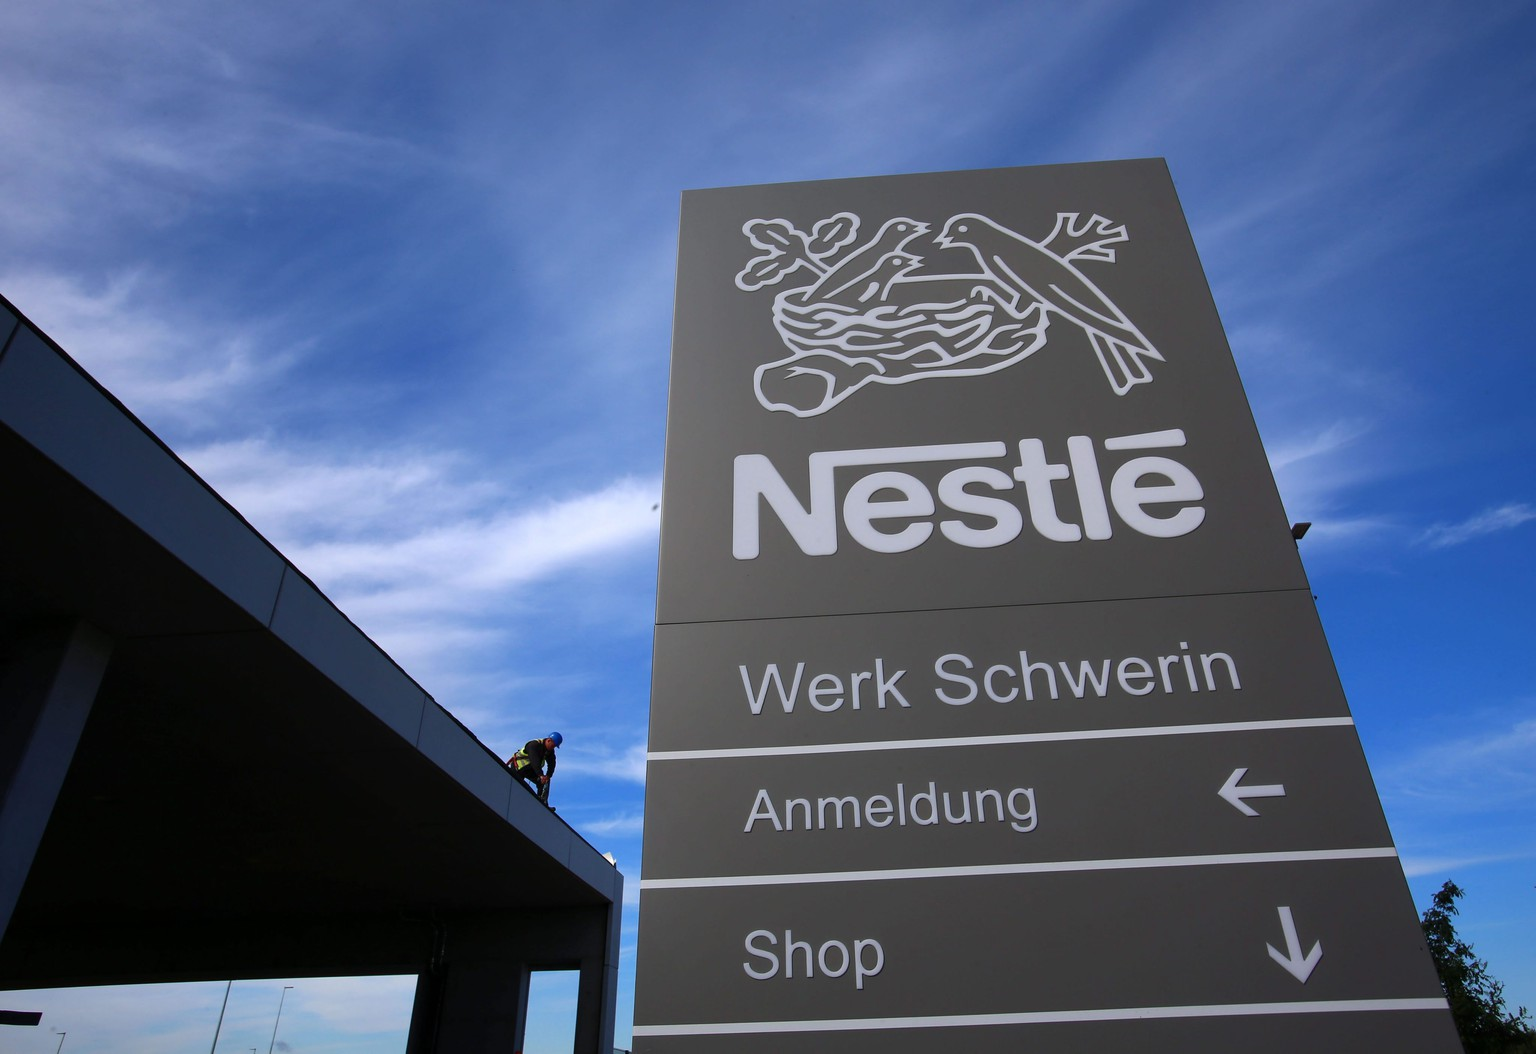 epa04380310 A picture made available on 02 September 2014, shows the logo of Nestle on a sign at the new coffee factory of food and beverage company Nestle in Schwerin, Germany, 27 August 2014. The new factory will be officially inaugurated on 05 September 2014.  EPA/JENS BUETTNER